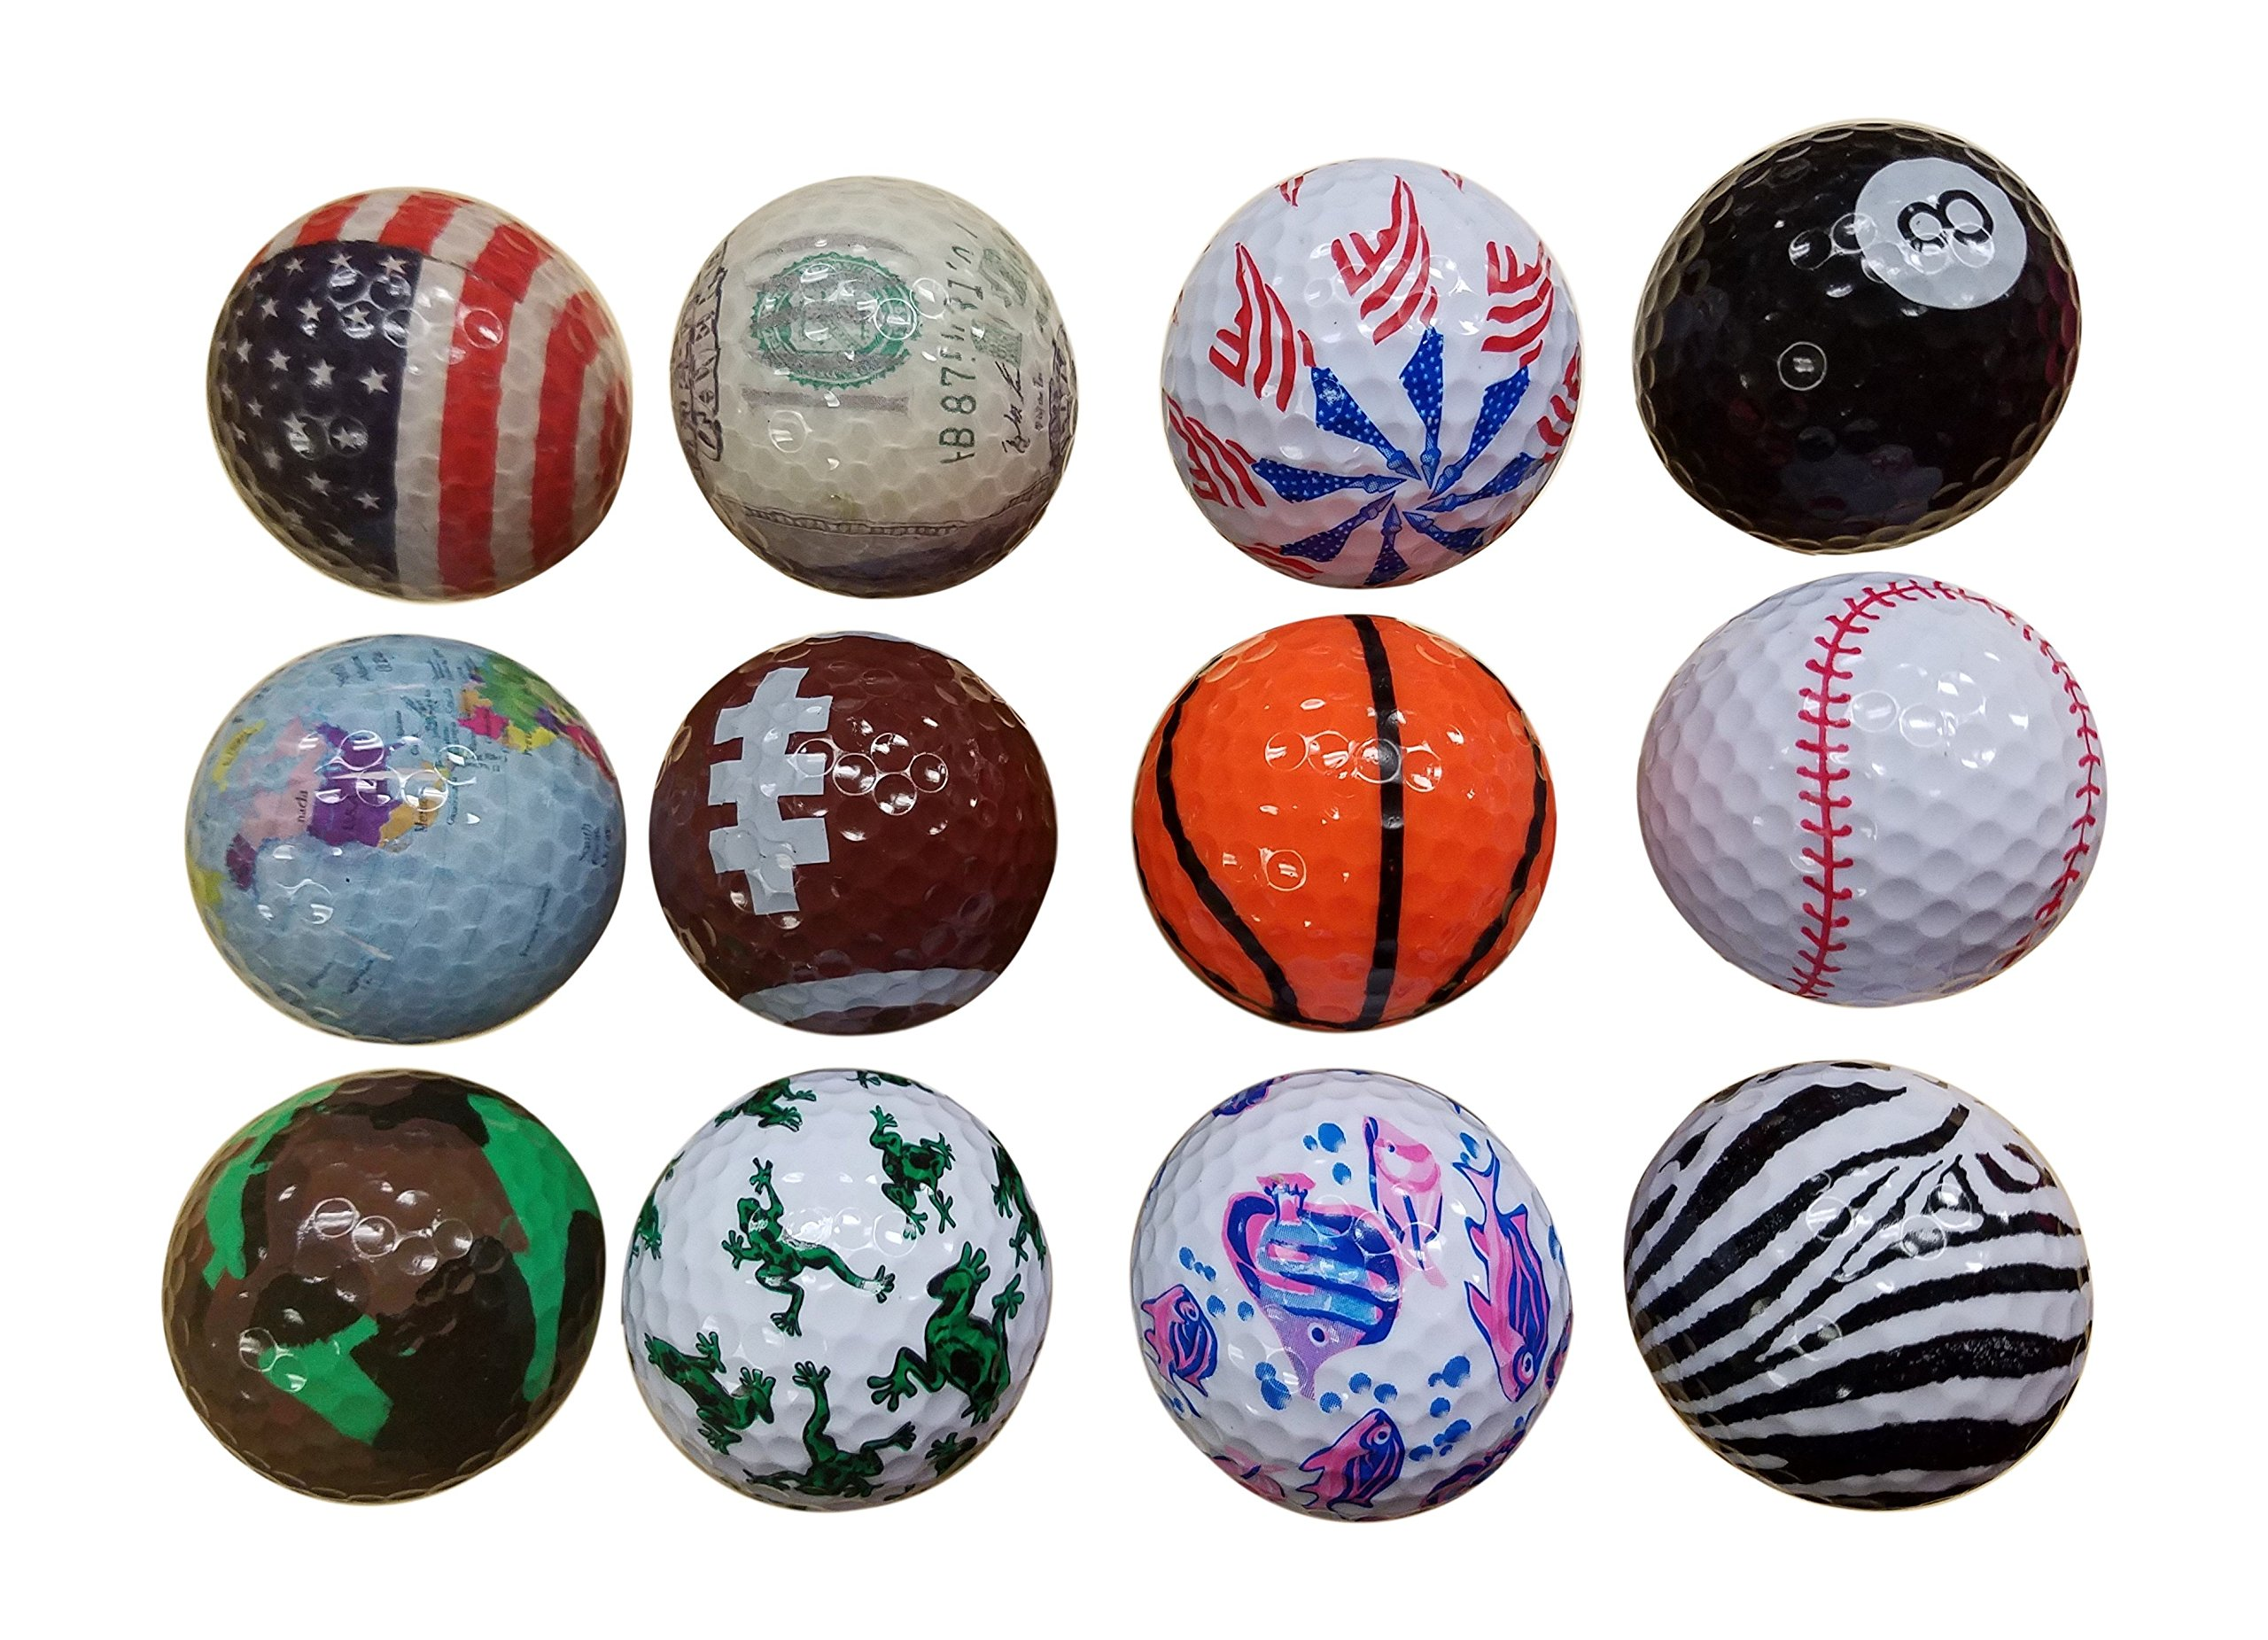 BZANY® Father's Day Gift Fun Crazy Golf Balls (1 Dozen)